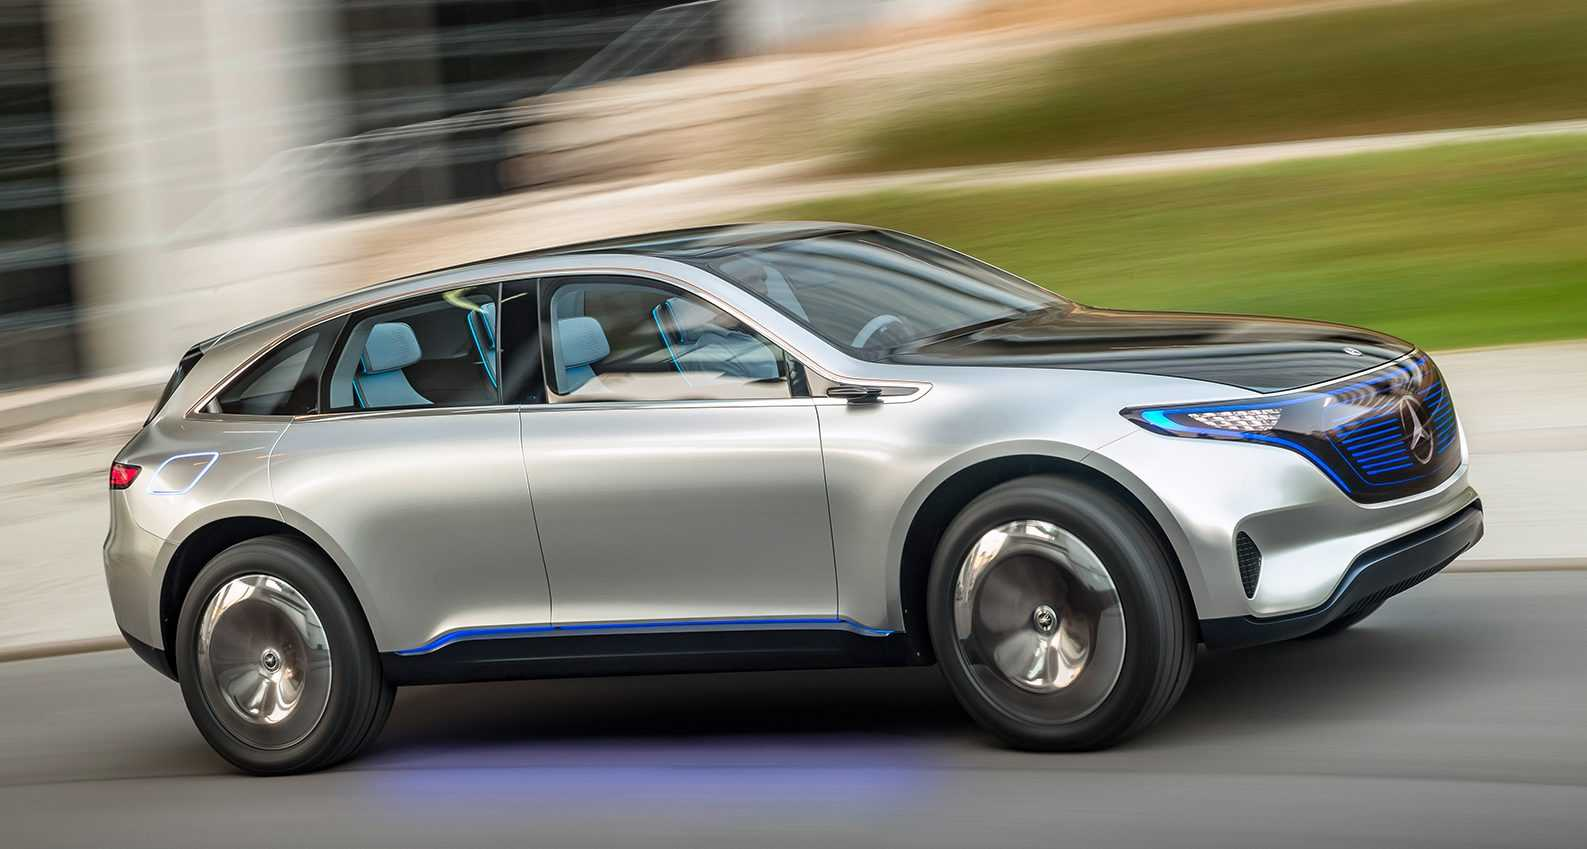 Mercedes Benz Launches Dedicated Brand to Manufacture Electric Cars